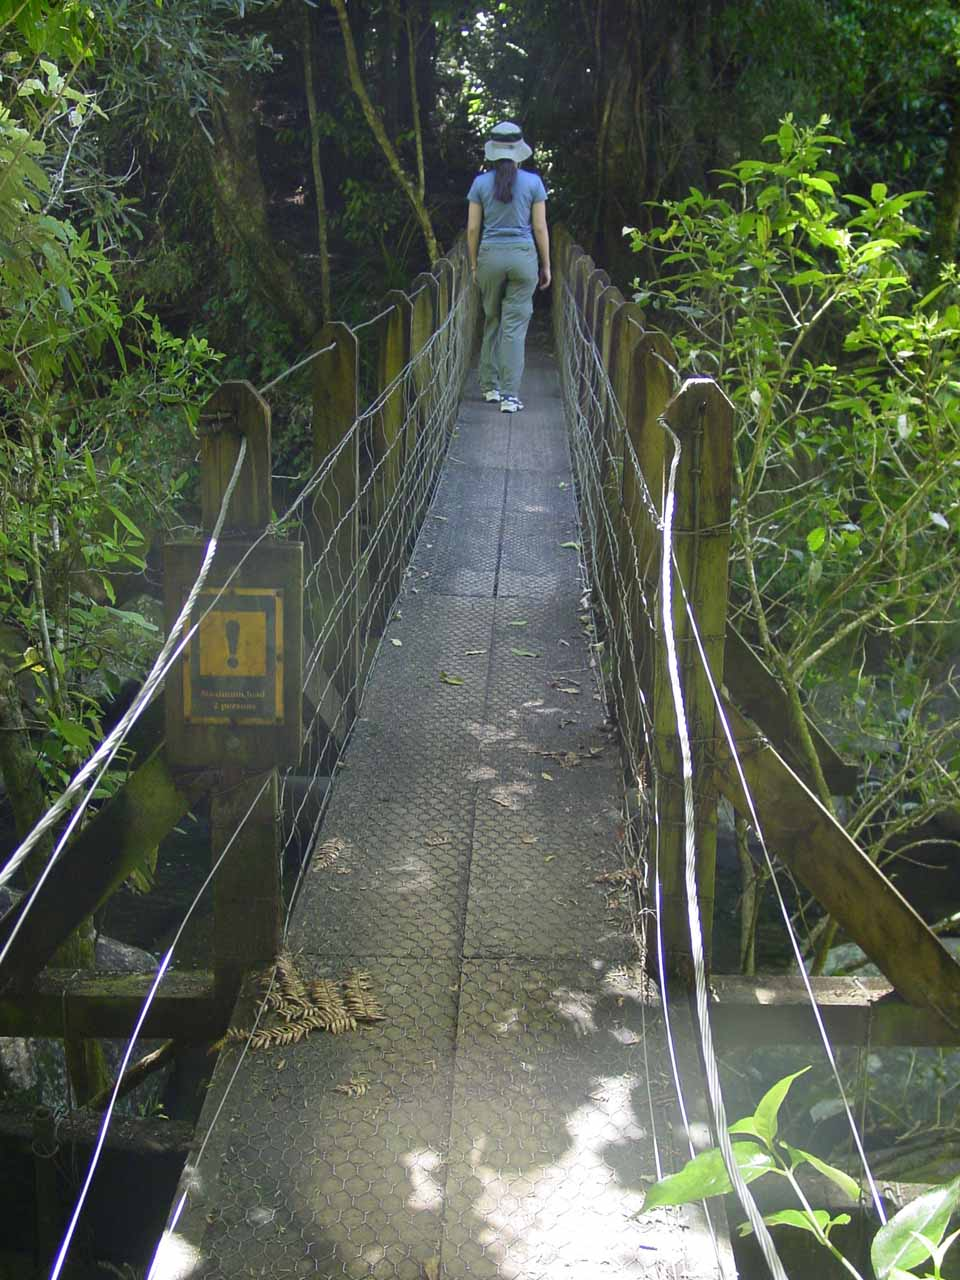 Julie crossing over one of the swinging bridges on the way to Wairere Falls